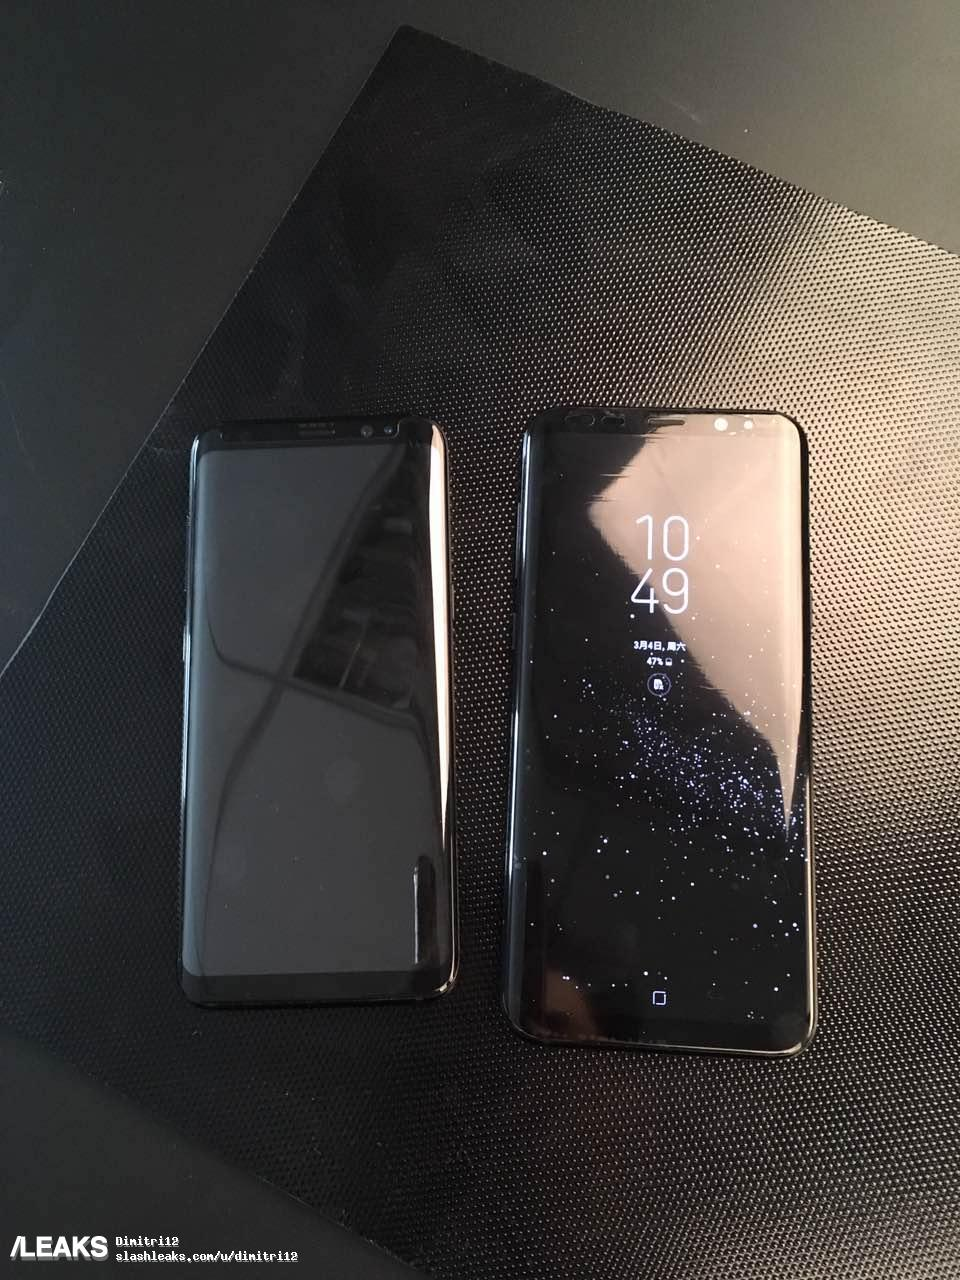 Here's the Samsung Galaxy S8 in black